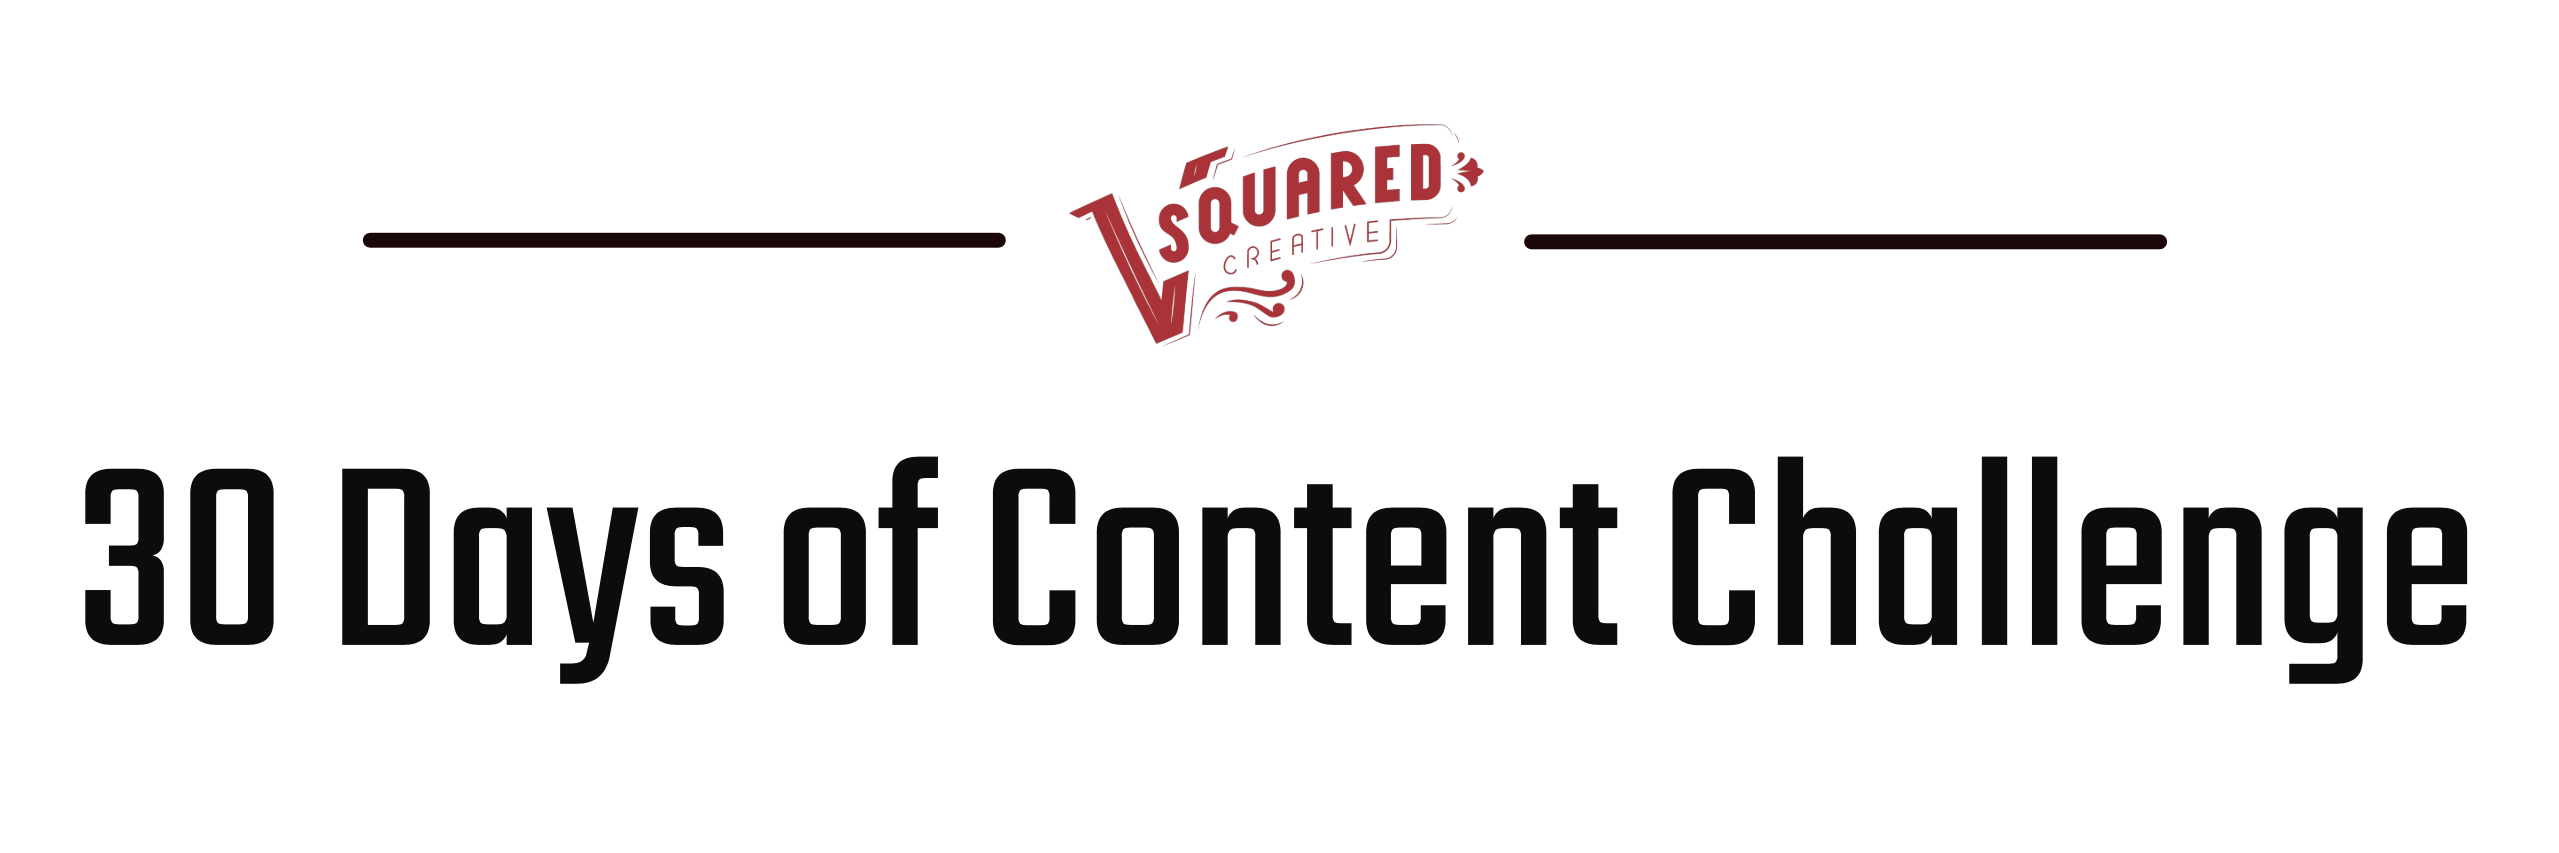 Join the 30 Days of Content Challenge Today!